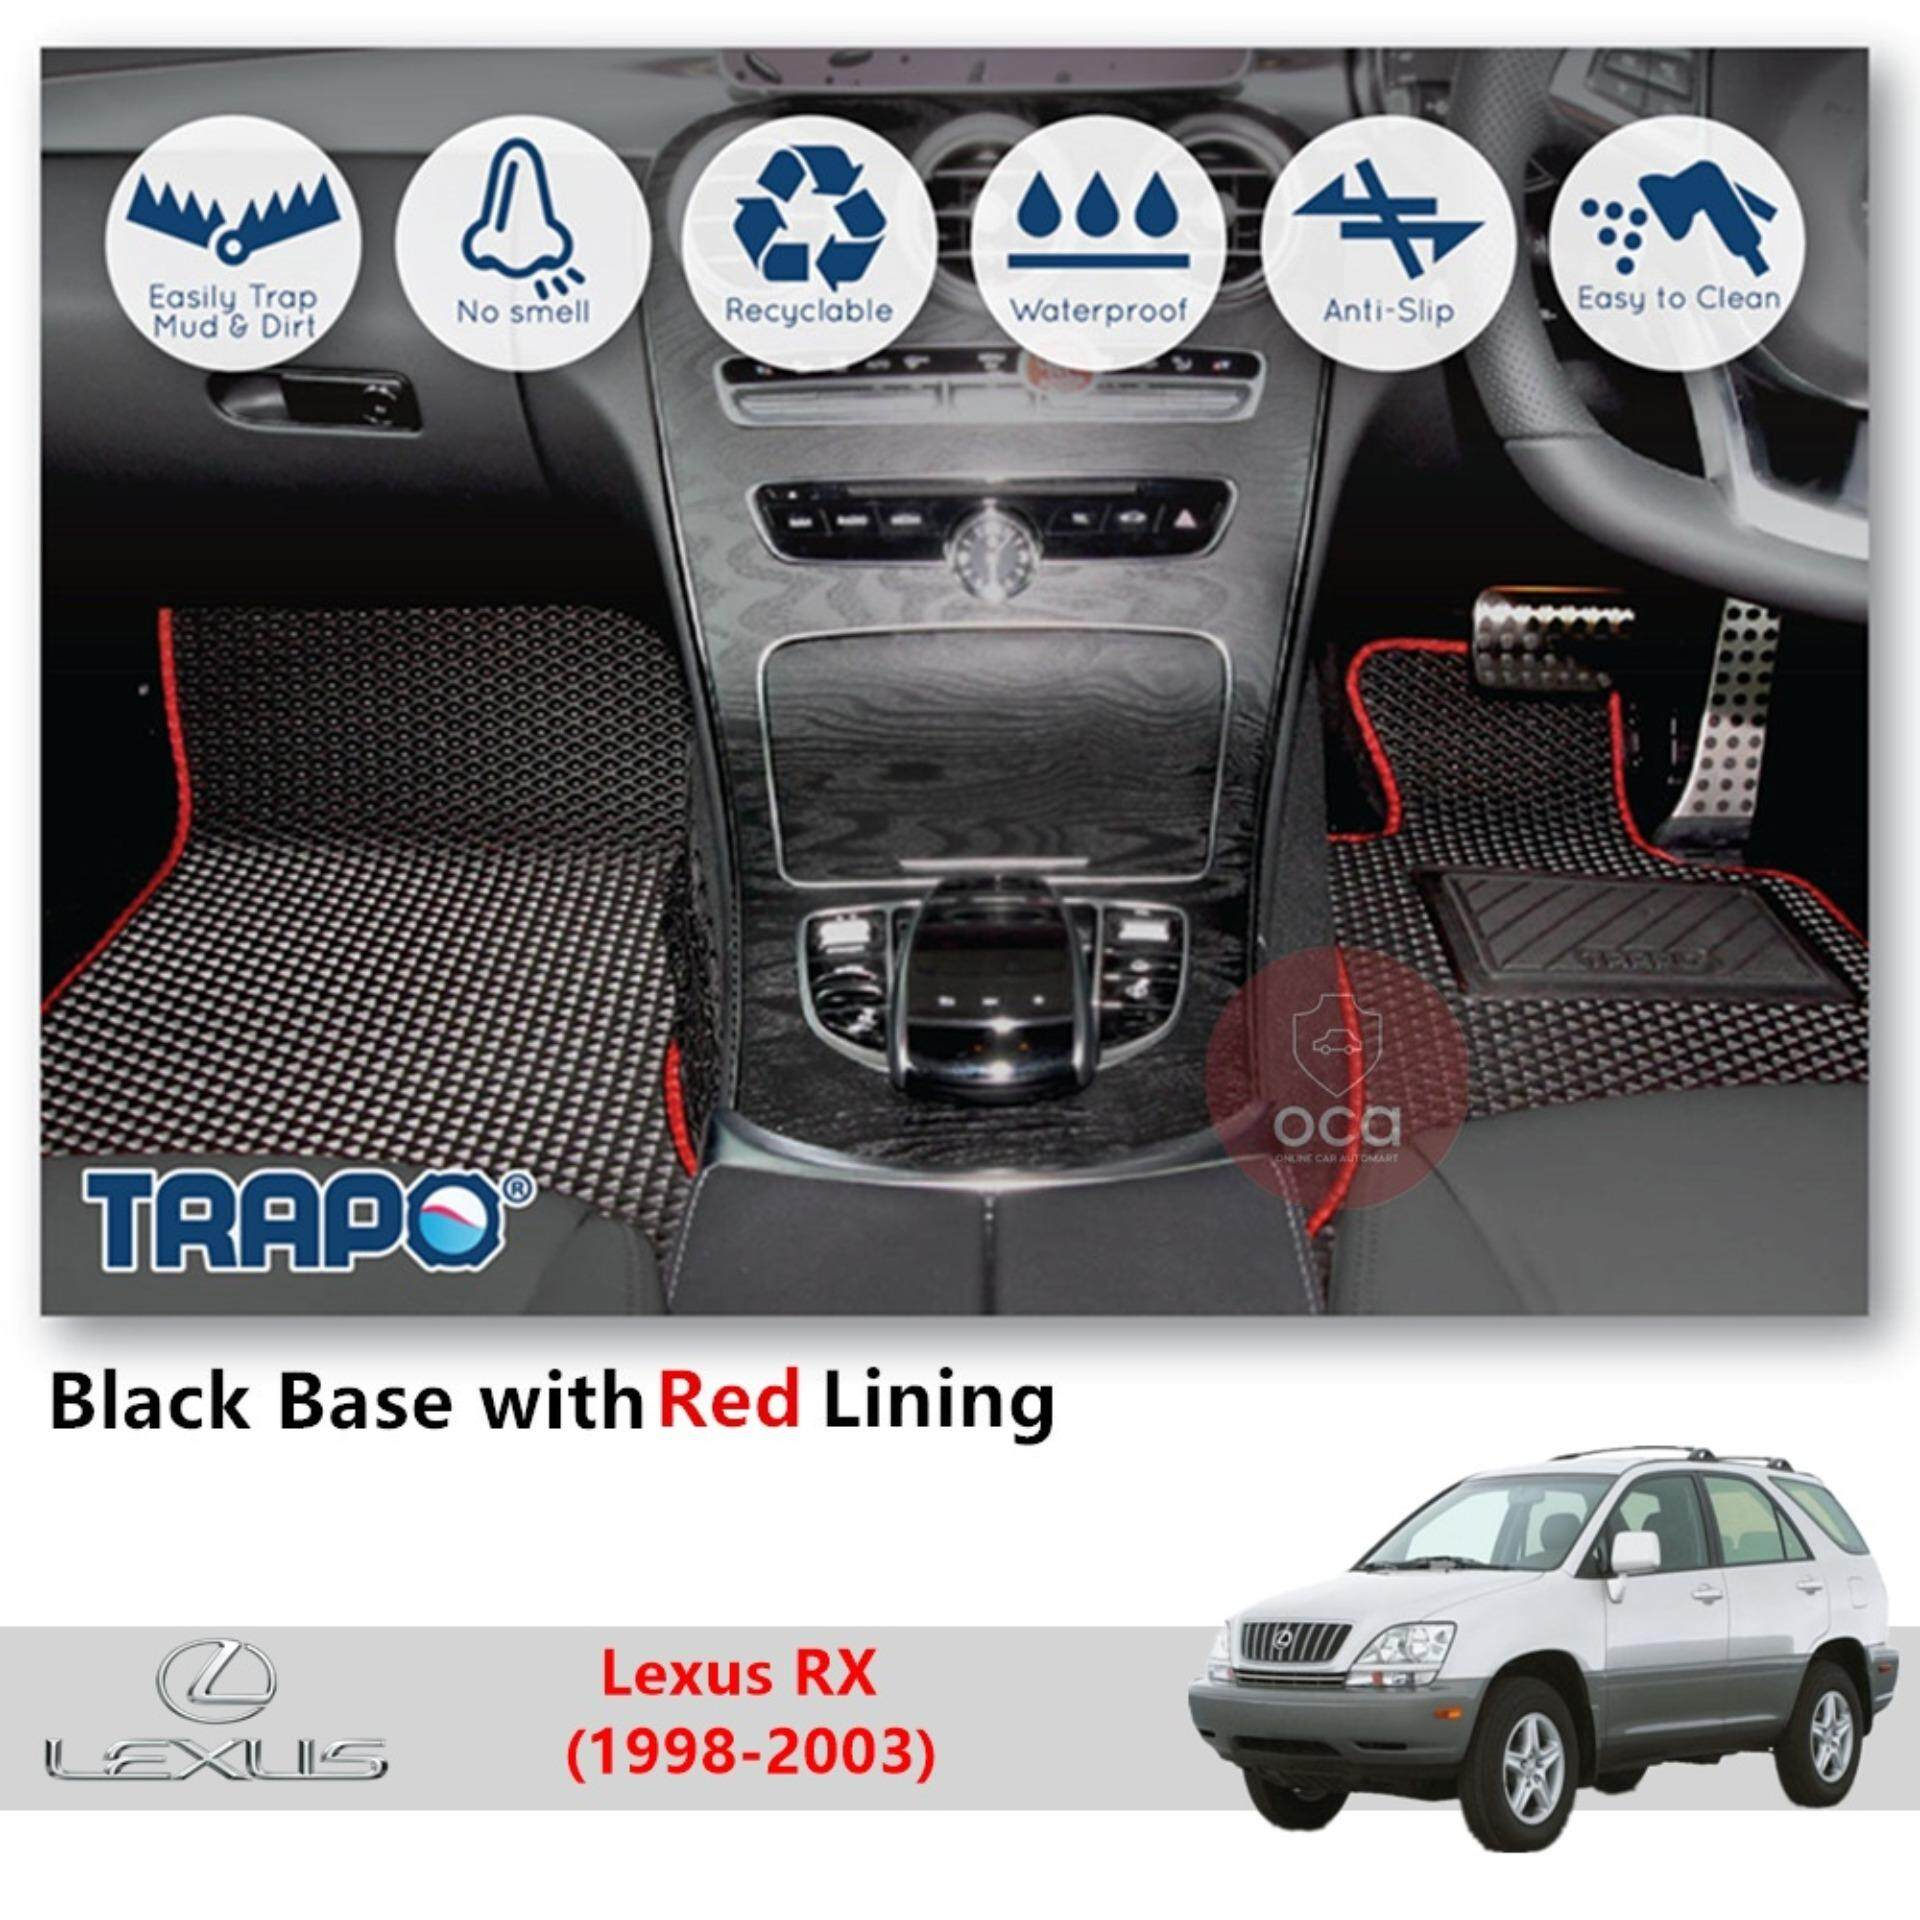 hight resolution of trapo customize car floor mat for lexus rx 1998 2003 black base with red lining grey lining blue lining black lining choose the colour in colour family